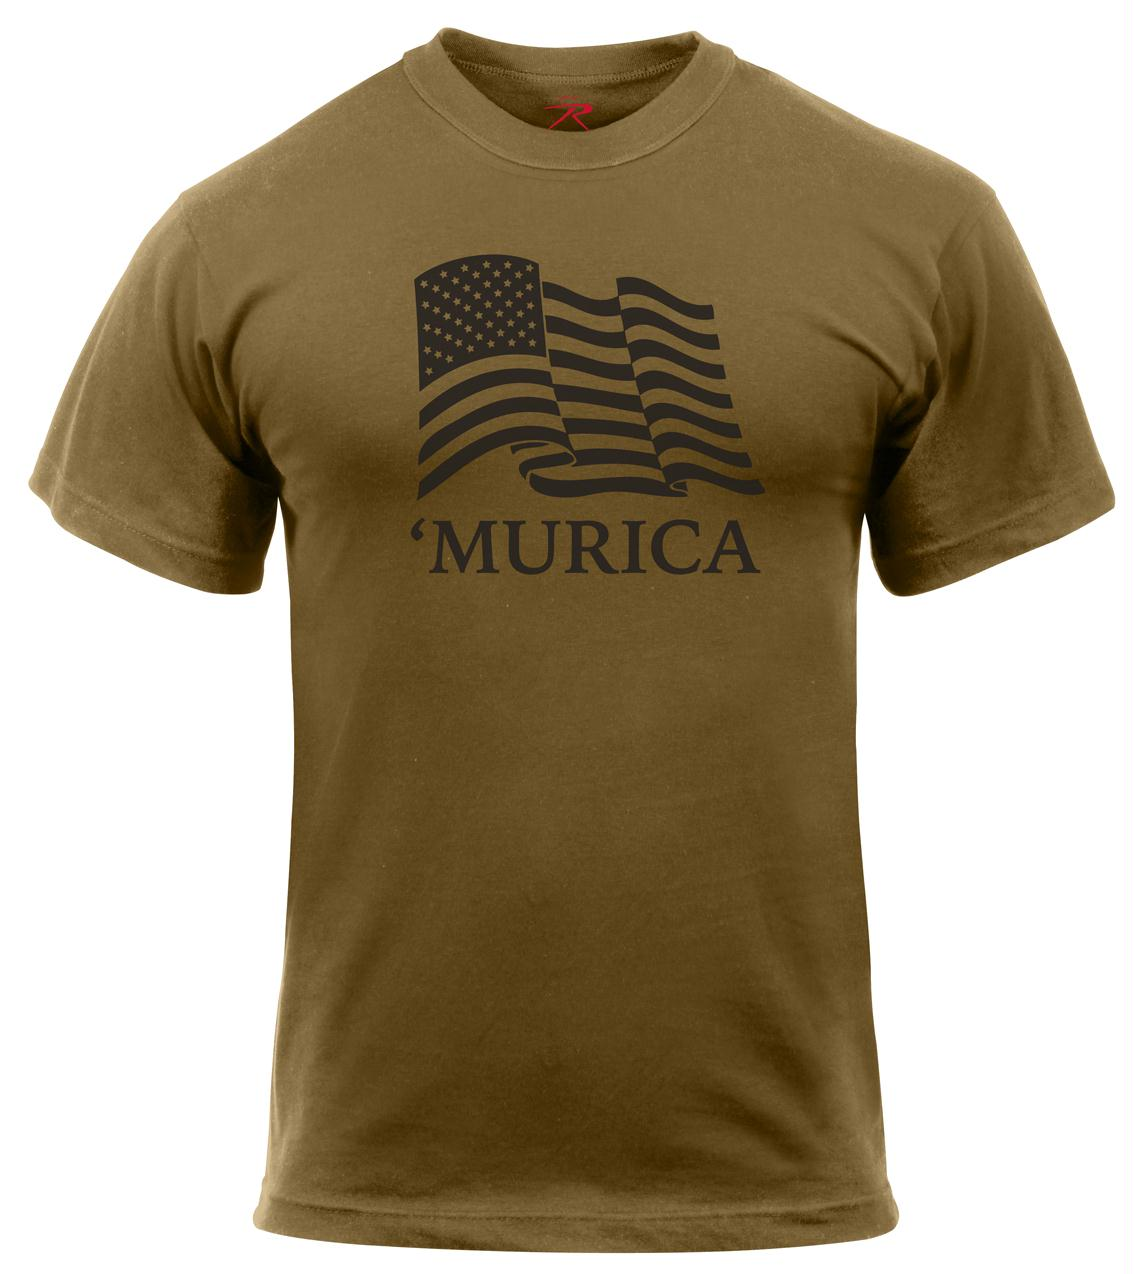 Rothco 'Murica US Flag T-Shirt